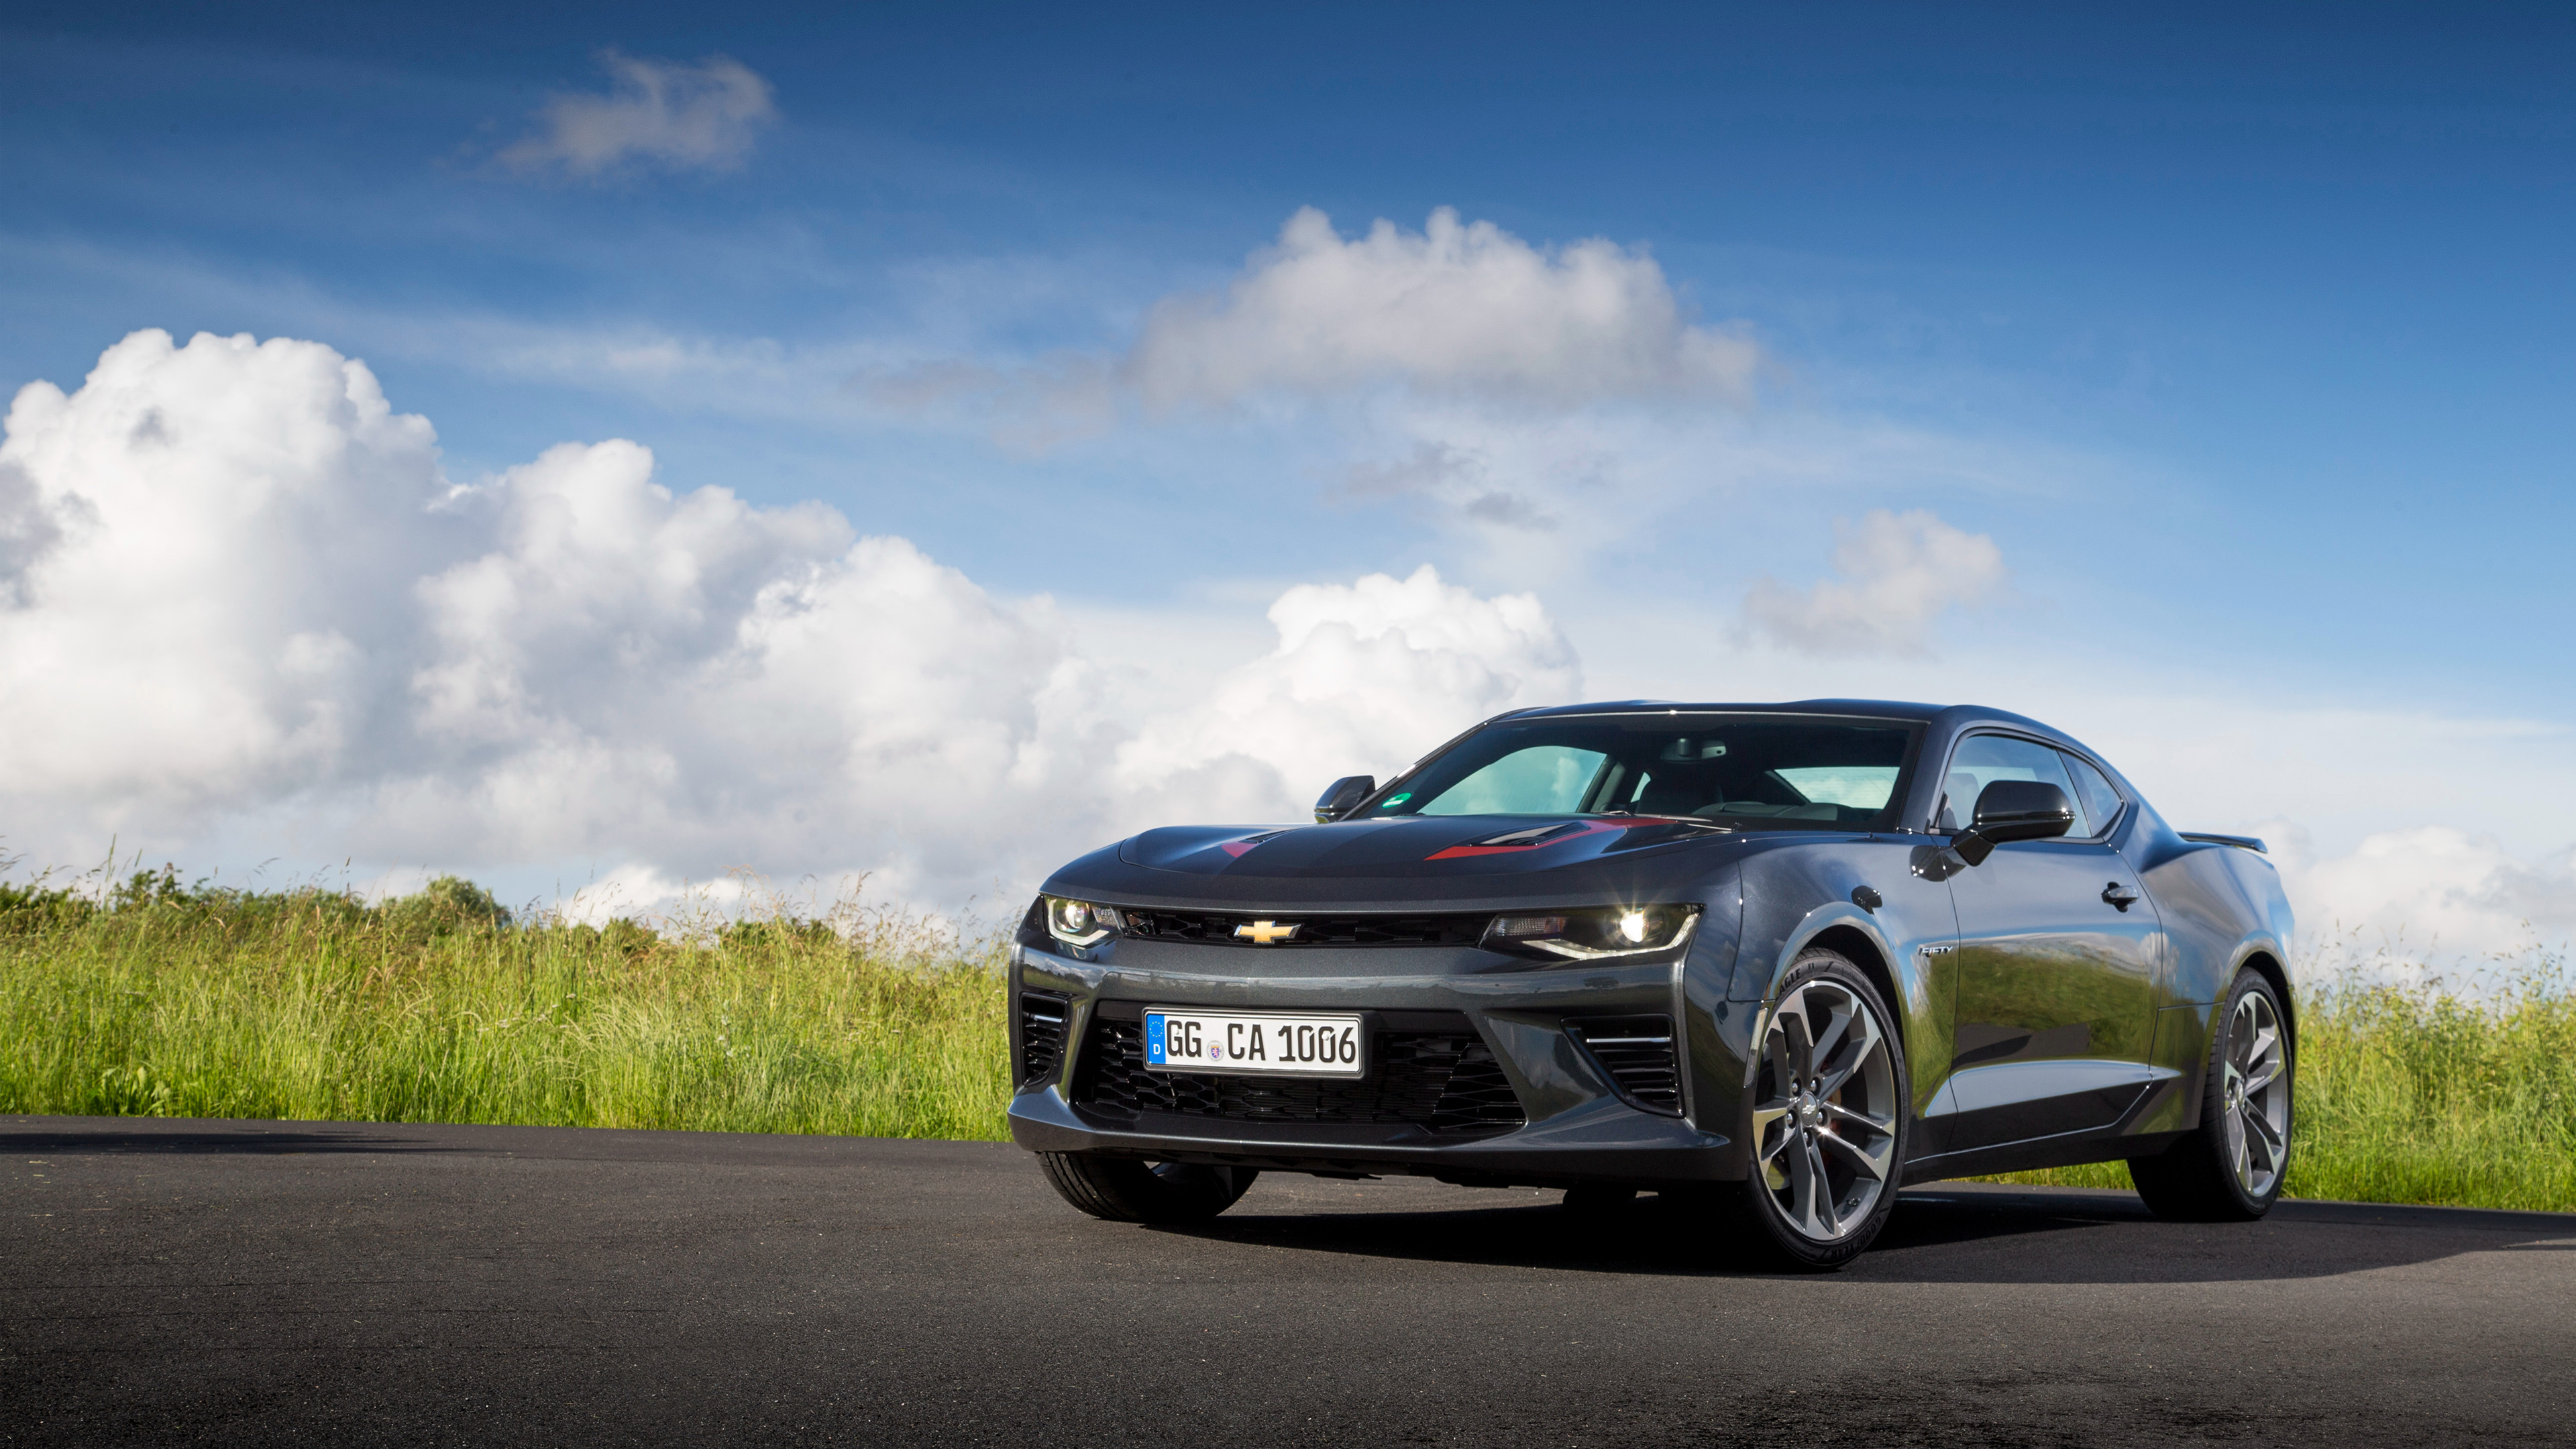 Th Anniversary Ss Camaro Car